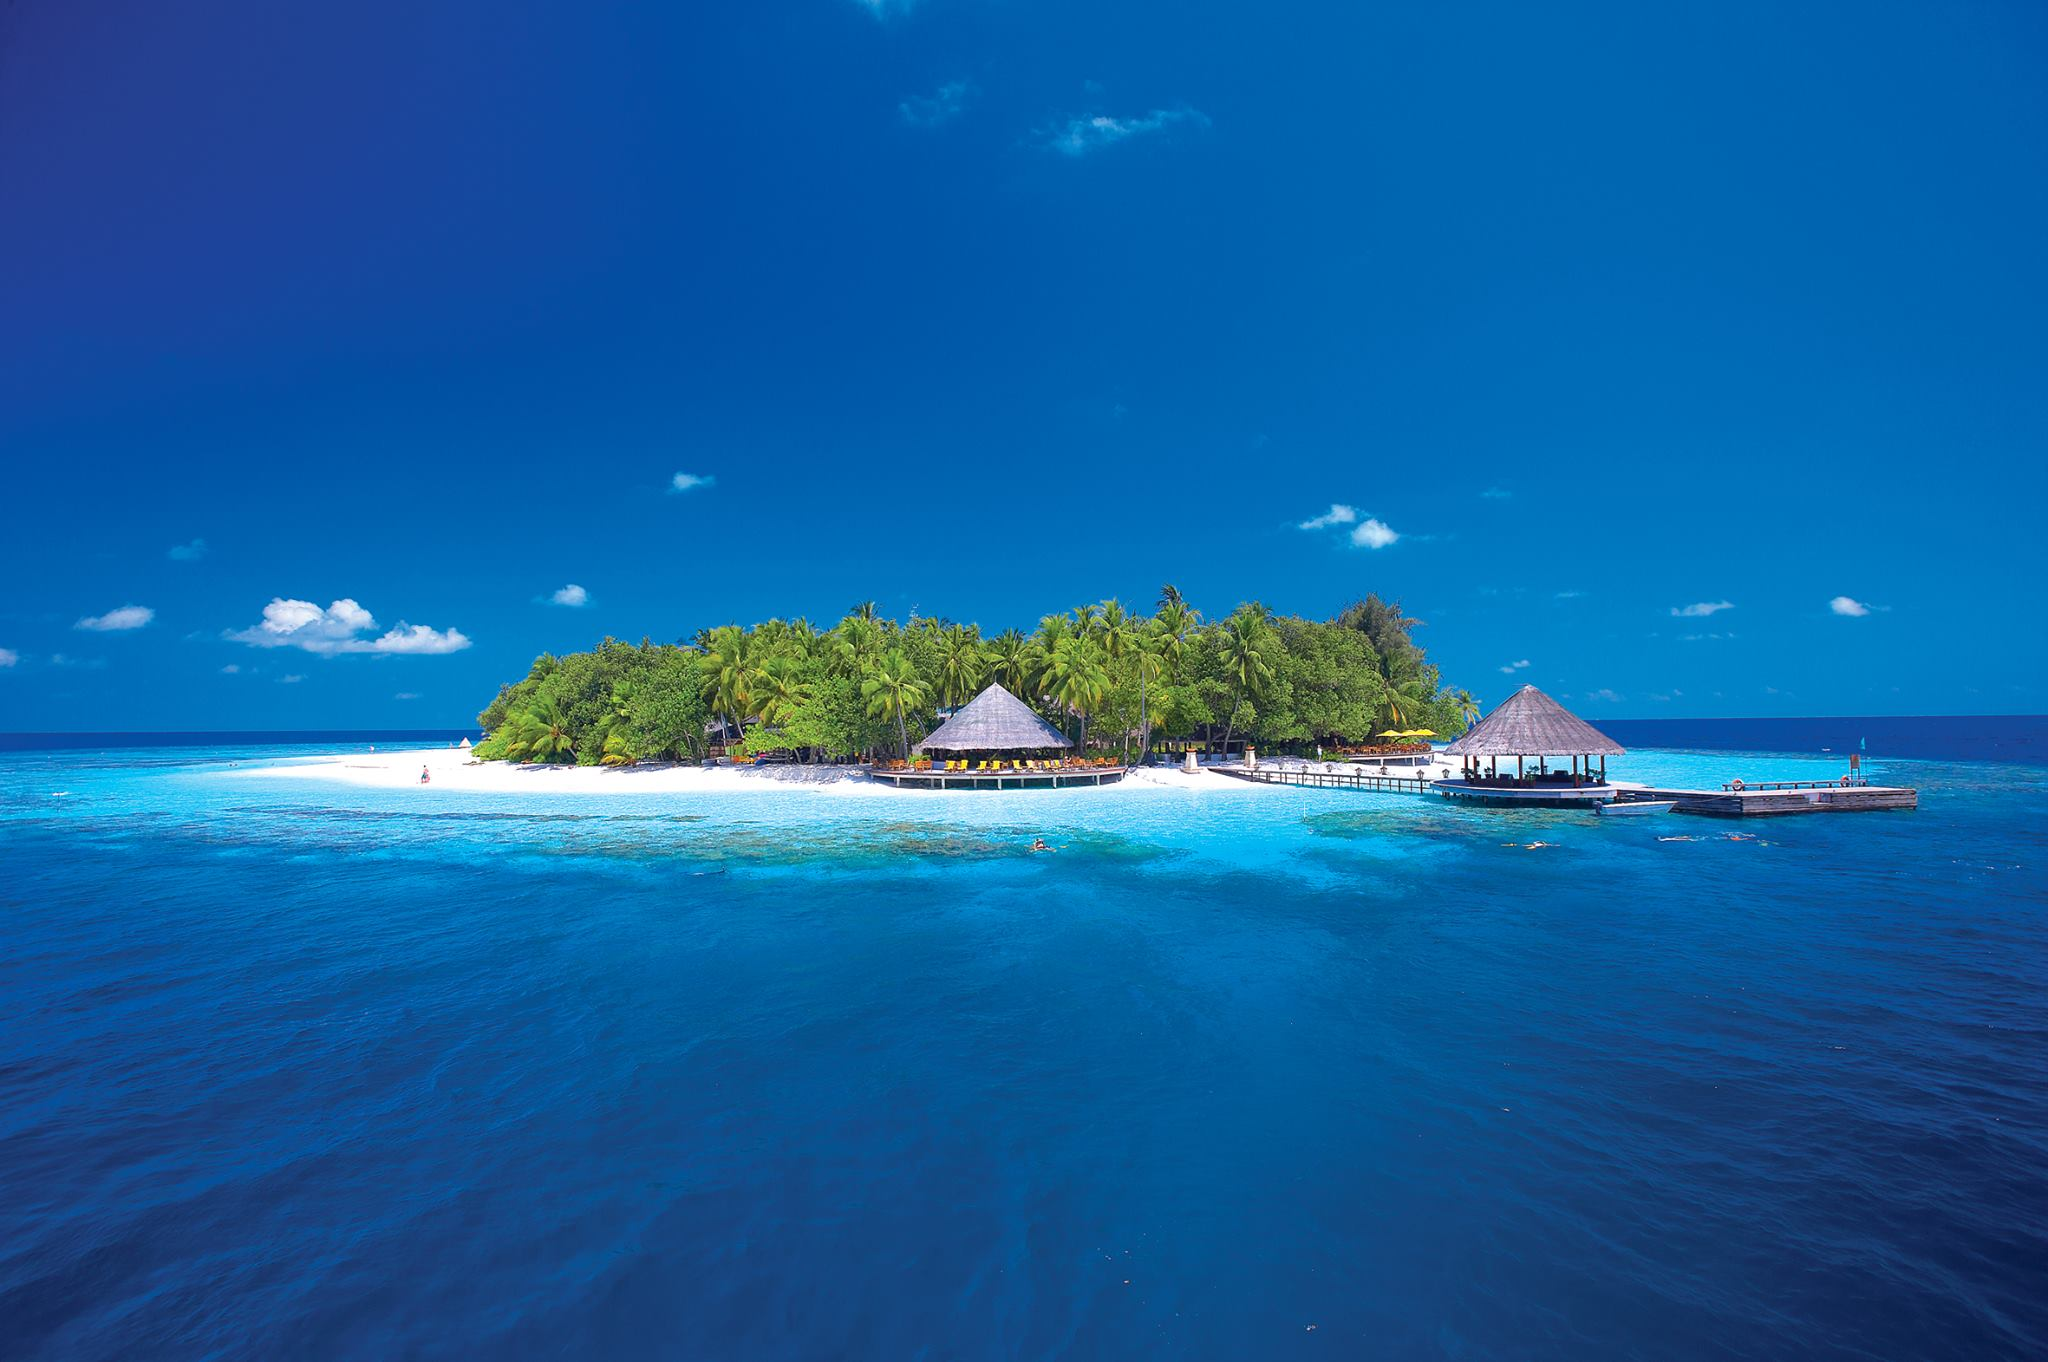 Nick Walton keeps the flames of amour alive with a visit to a duo of decadent Angsana hideaways in the Maldives.